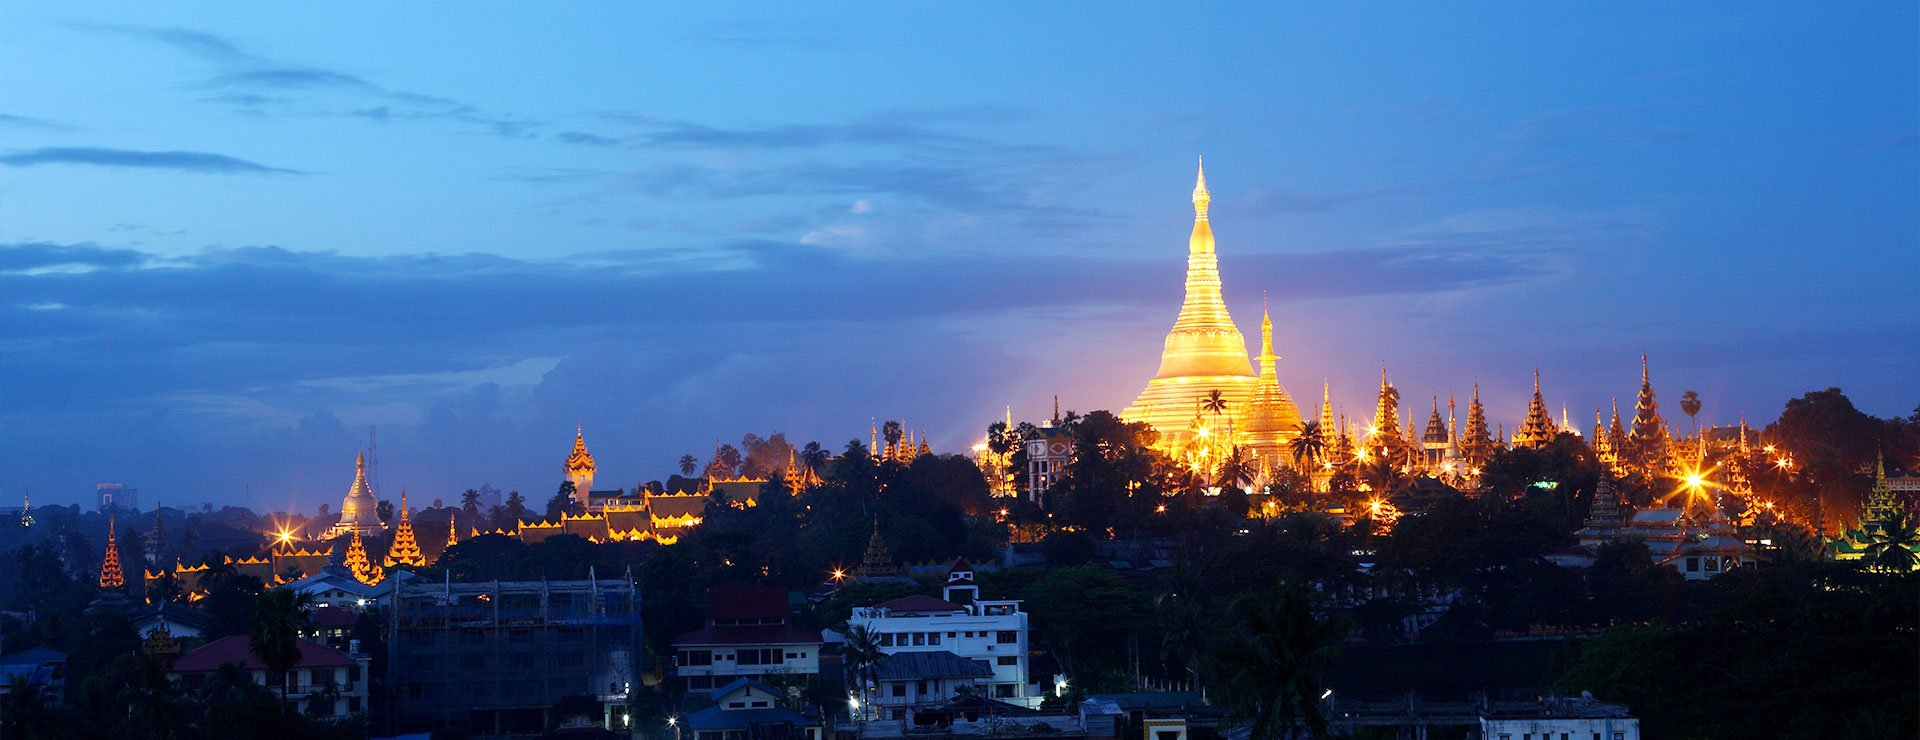 Top 5 Pagodas To Explore In Yangon, Myanmar